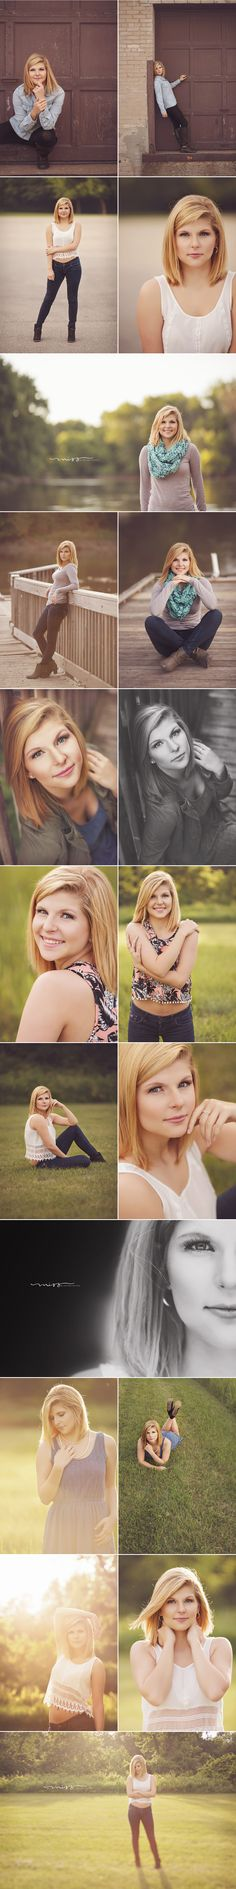 Mid Michigan High School Senior Photos | Sara 3